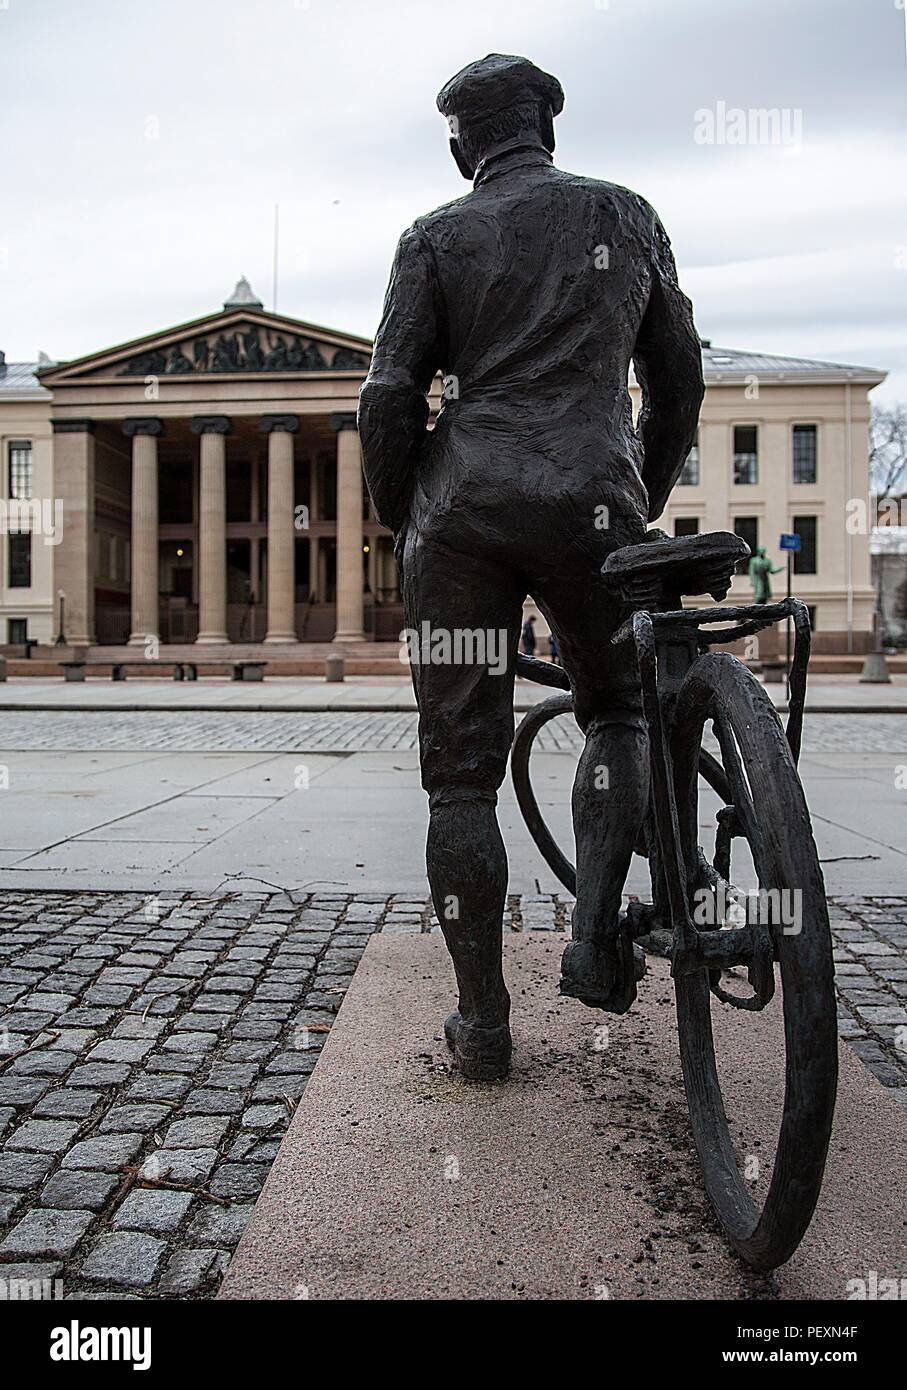 Statue of wartime resistance hero Gunnar Sonsteby located in Karl Johans Gate, Oslo, Norway - Stock Image